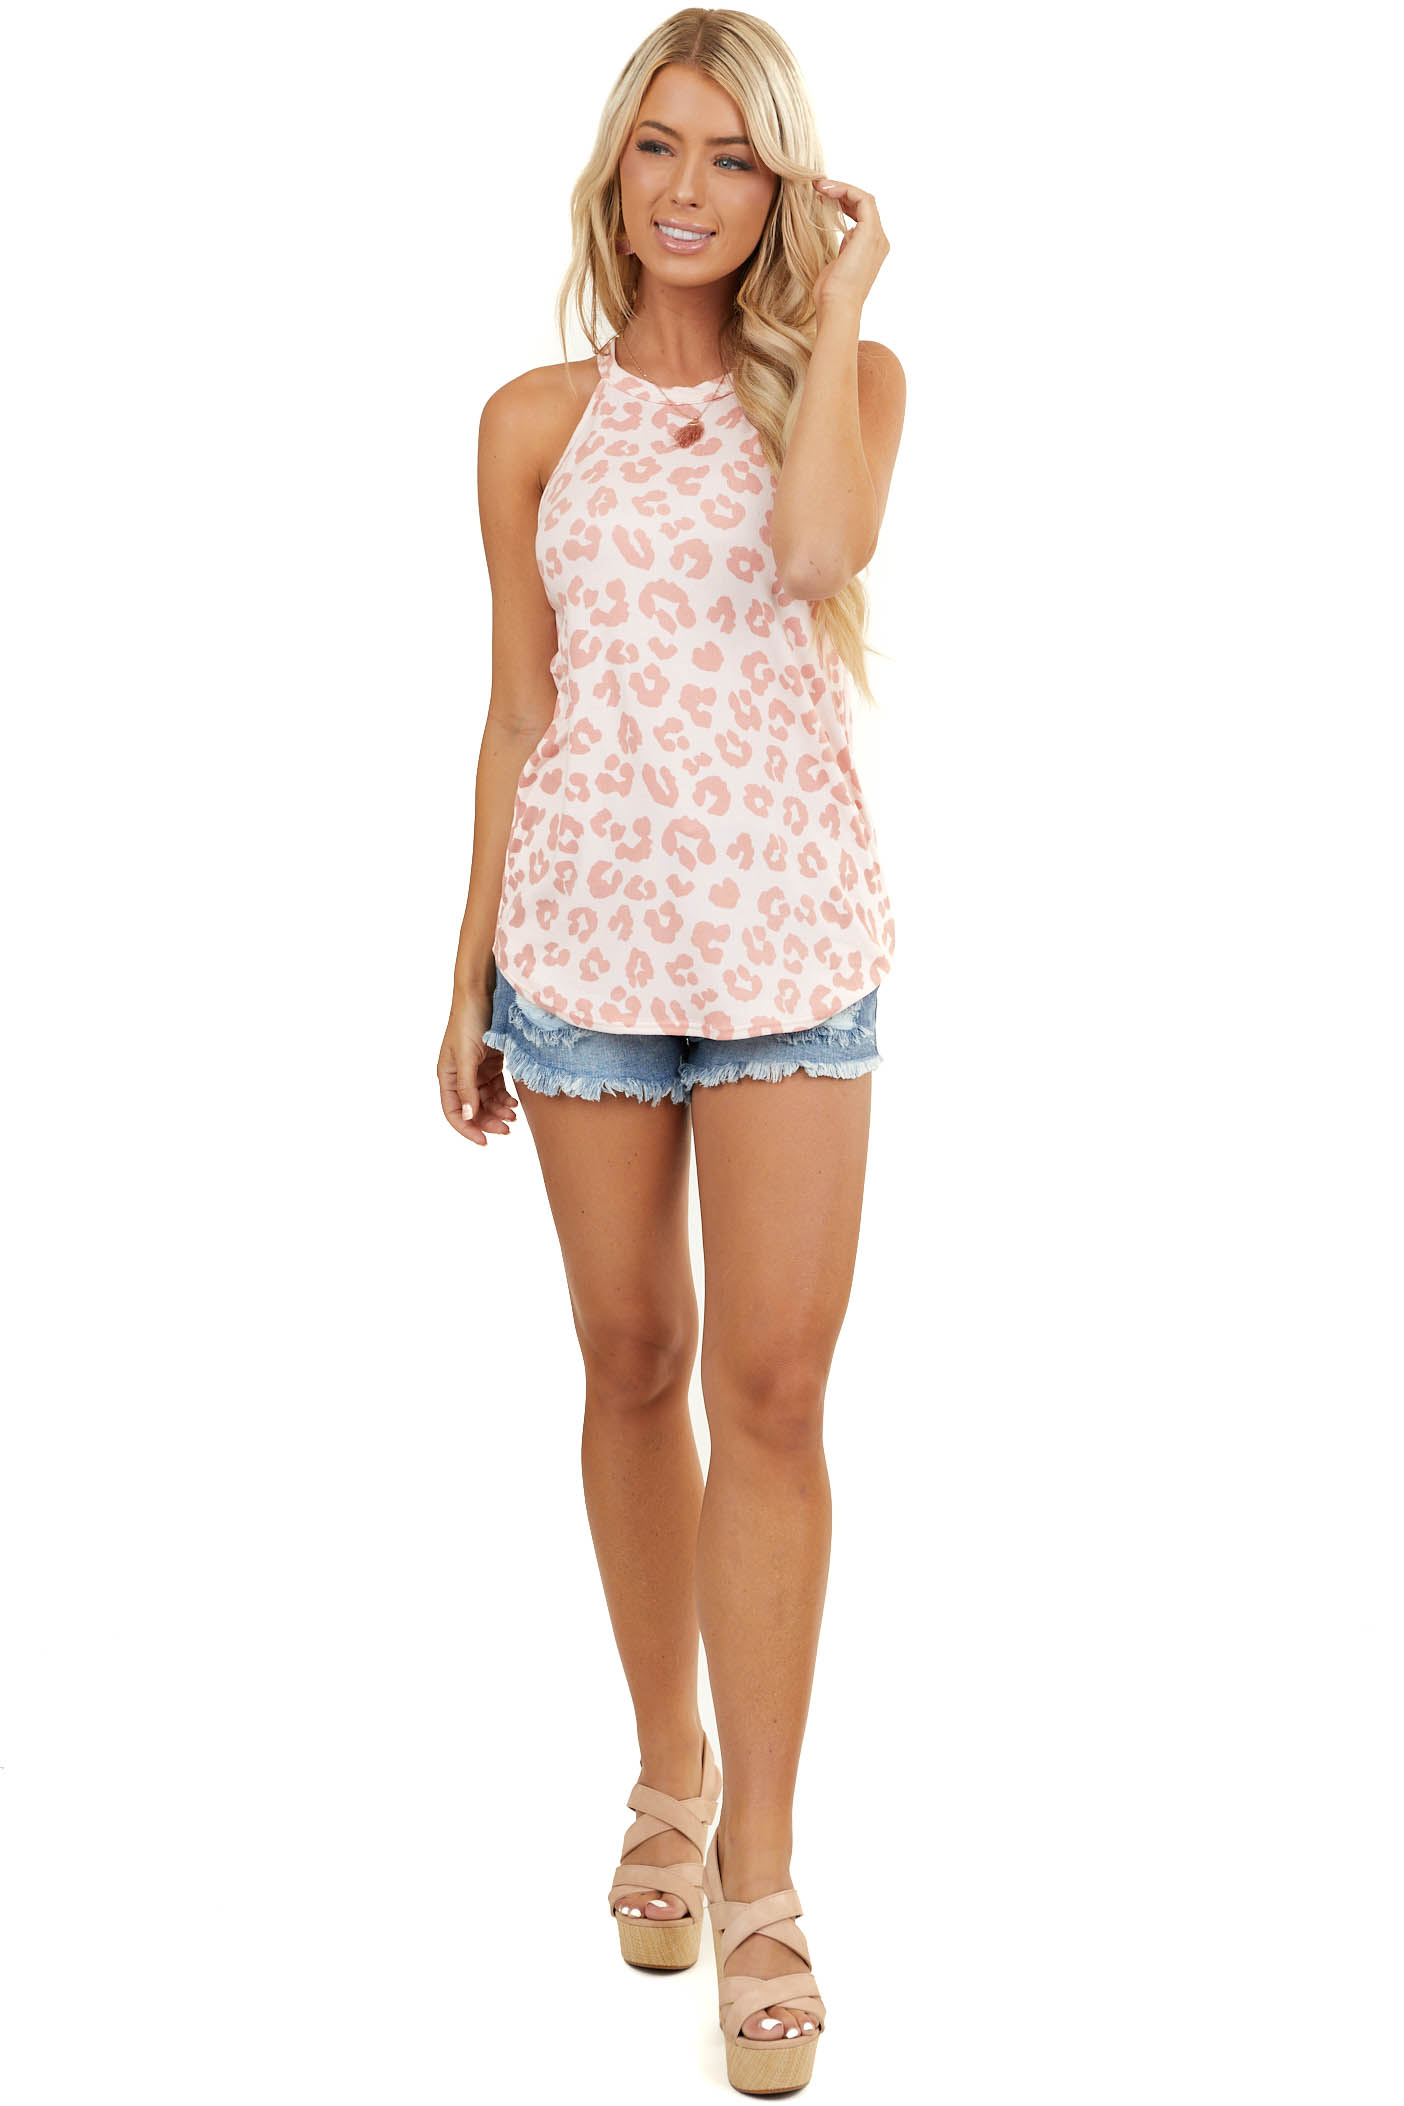 Pale Pink Leopard Super Soft Tank Top with High Neckline